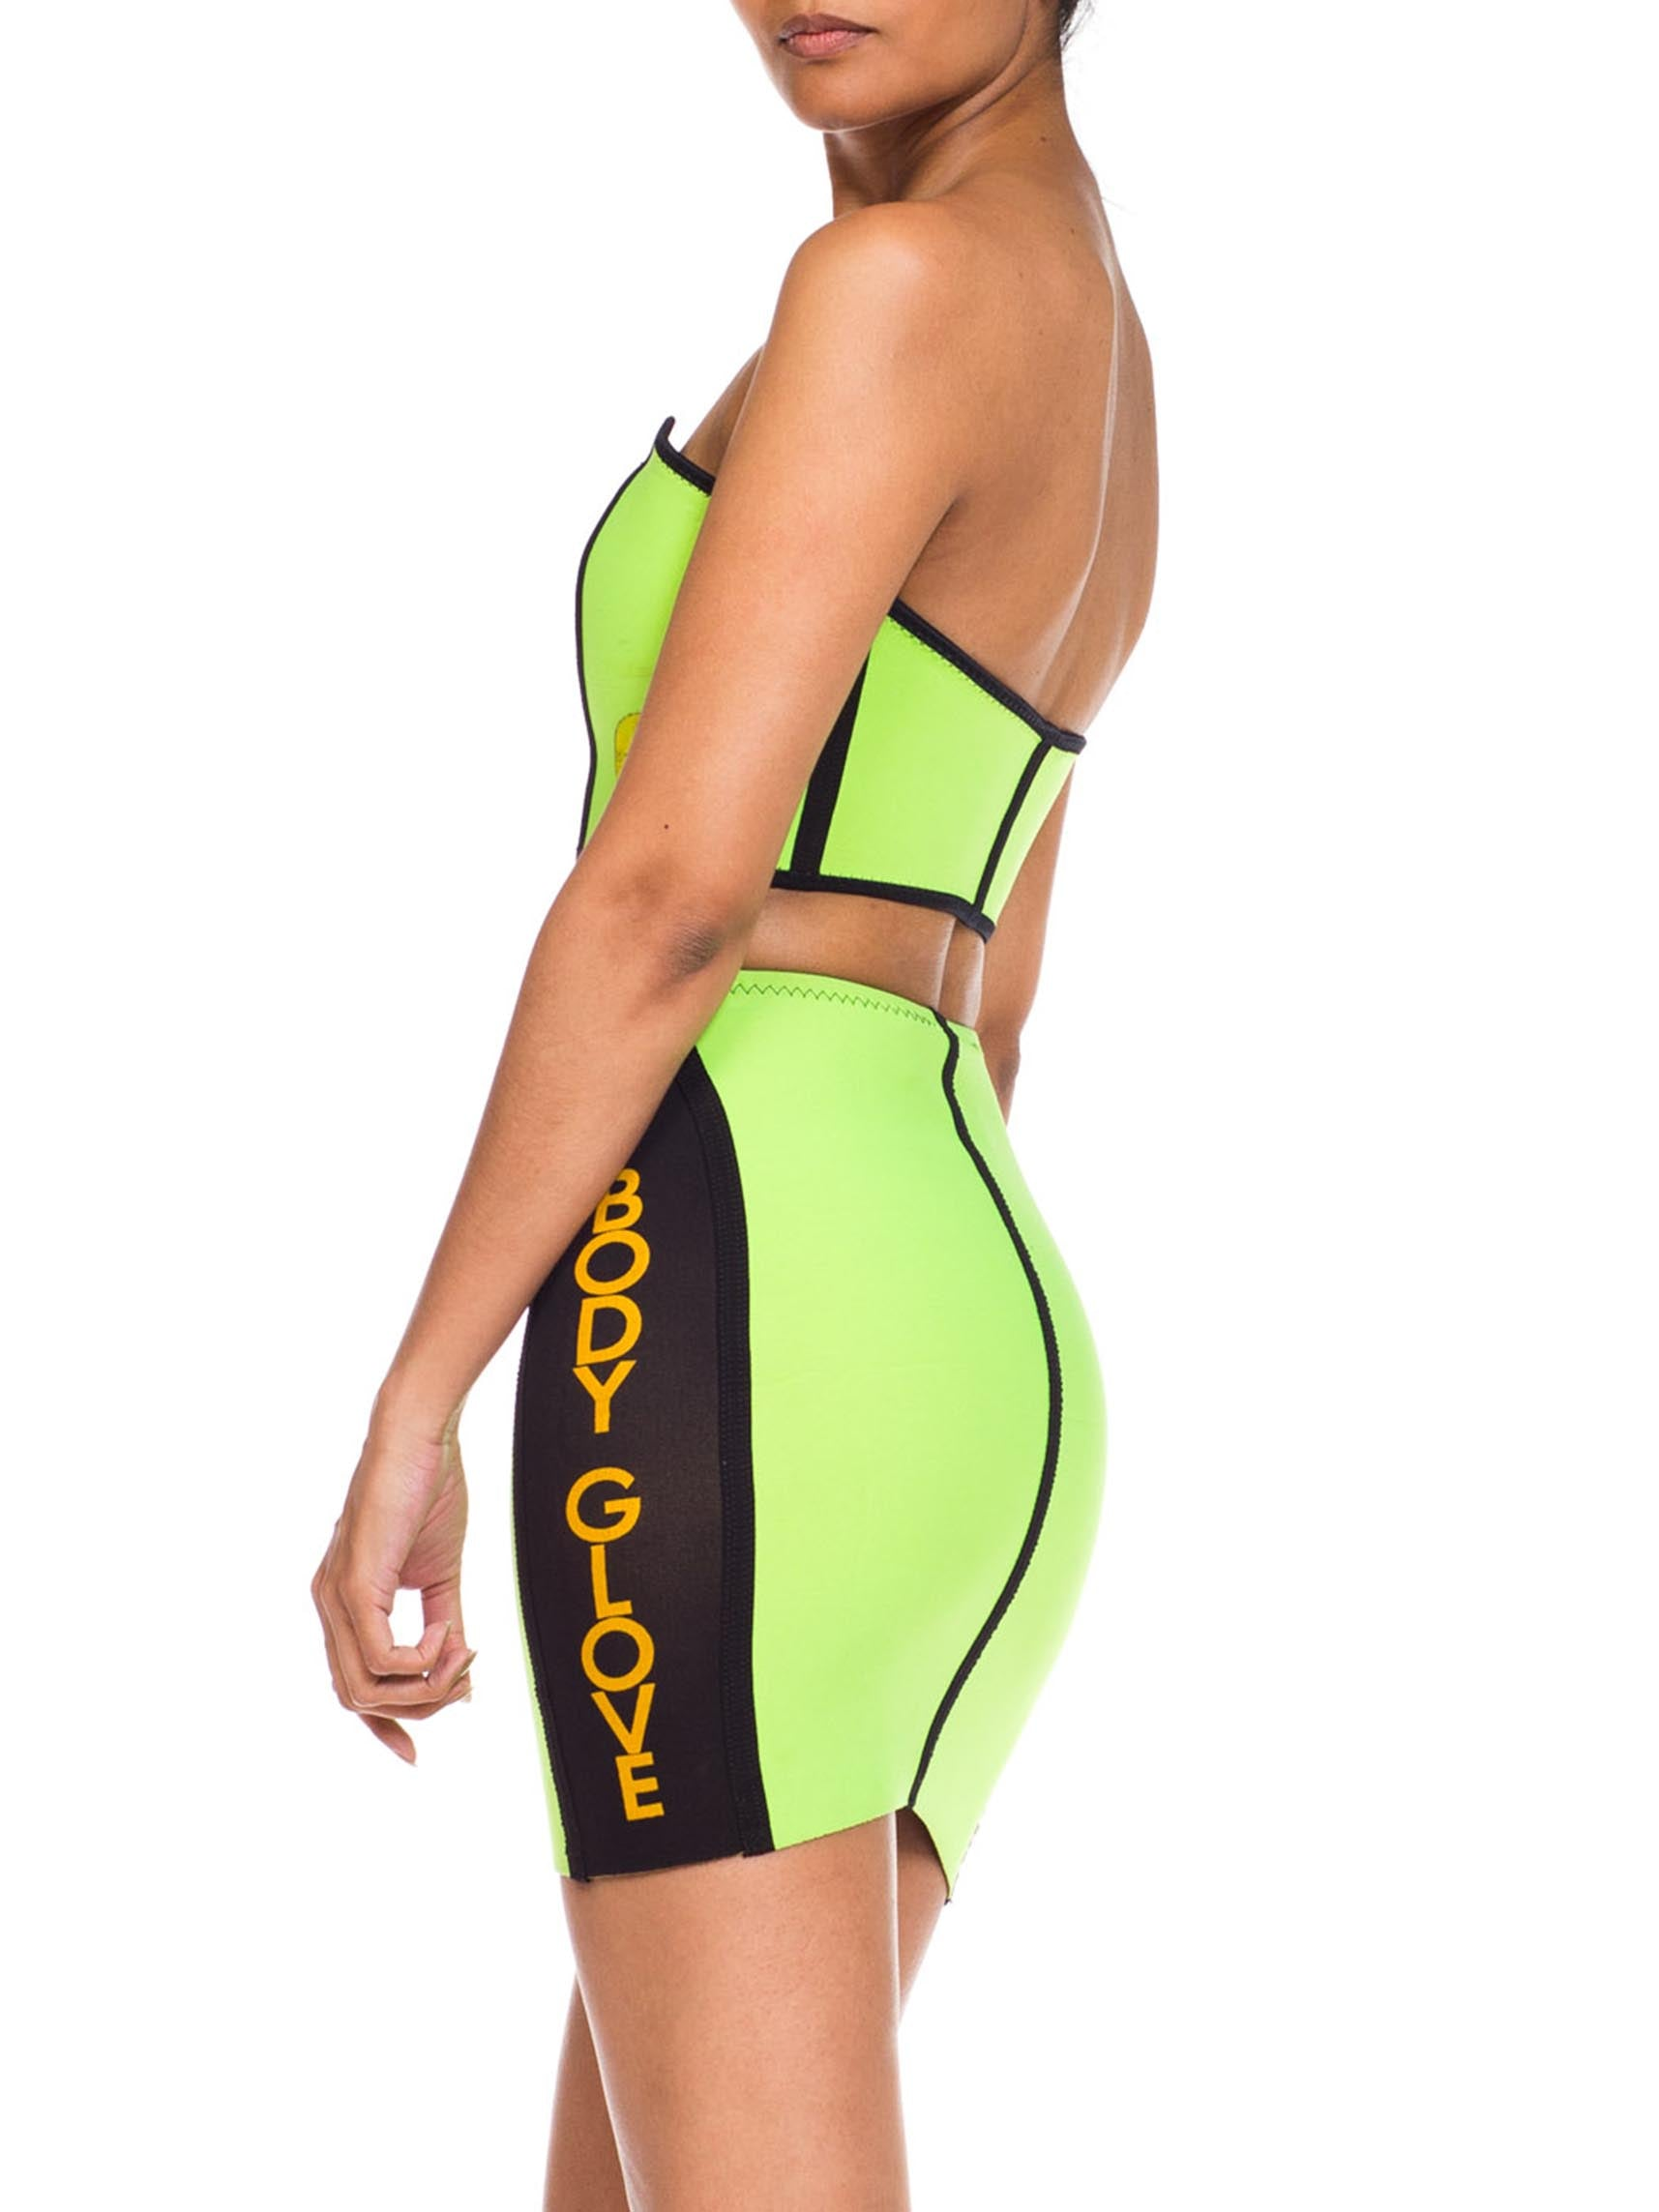 1980S BODY GLOVE Neon Lime Green Neoprene Strapless Zip Up Bra Top & Mini Skirt Ensemble